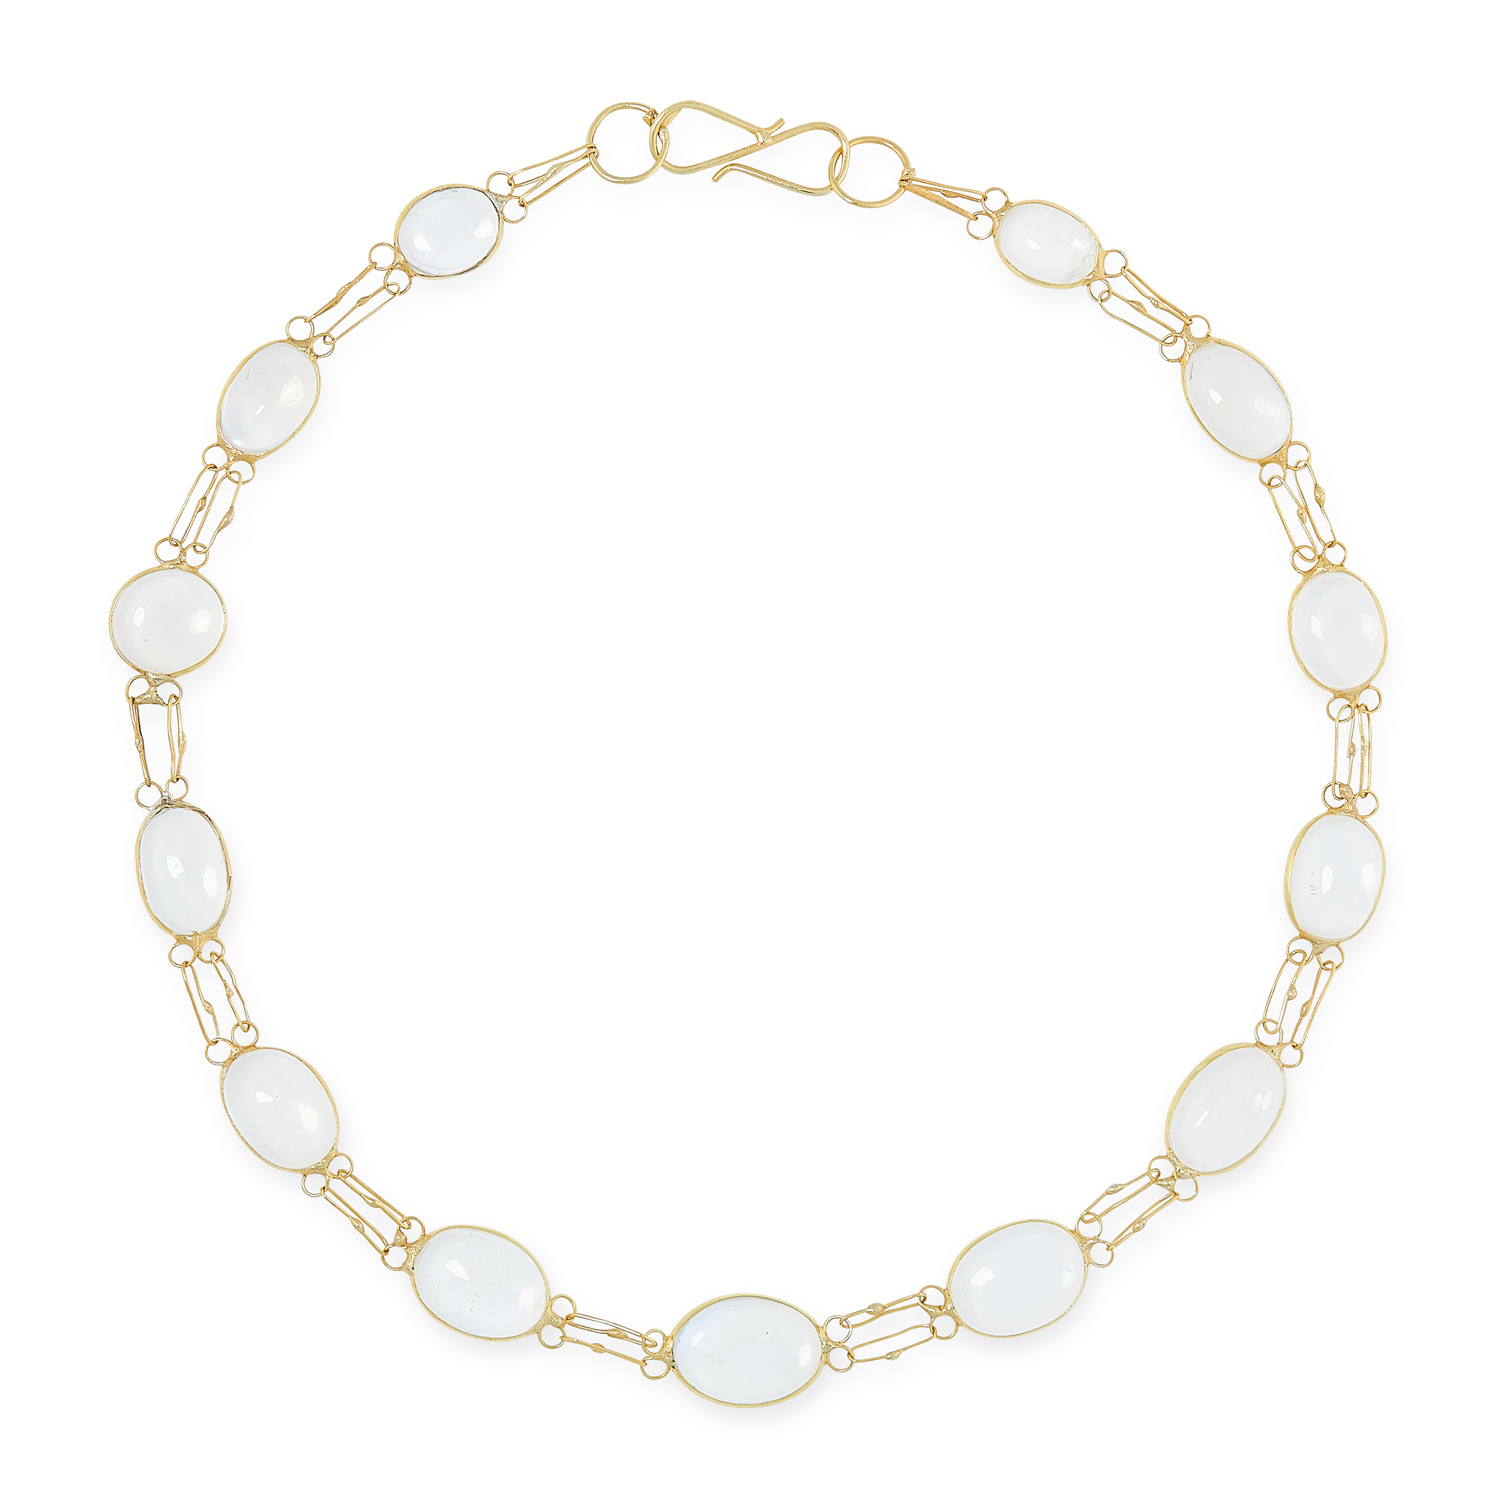 A MOONSTONE NECKLACE AND BRACELET SUITE each set with cabochon moonstones, tests as yellow gold, - Image 3 of 3